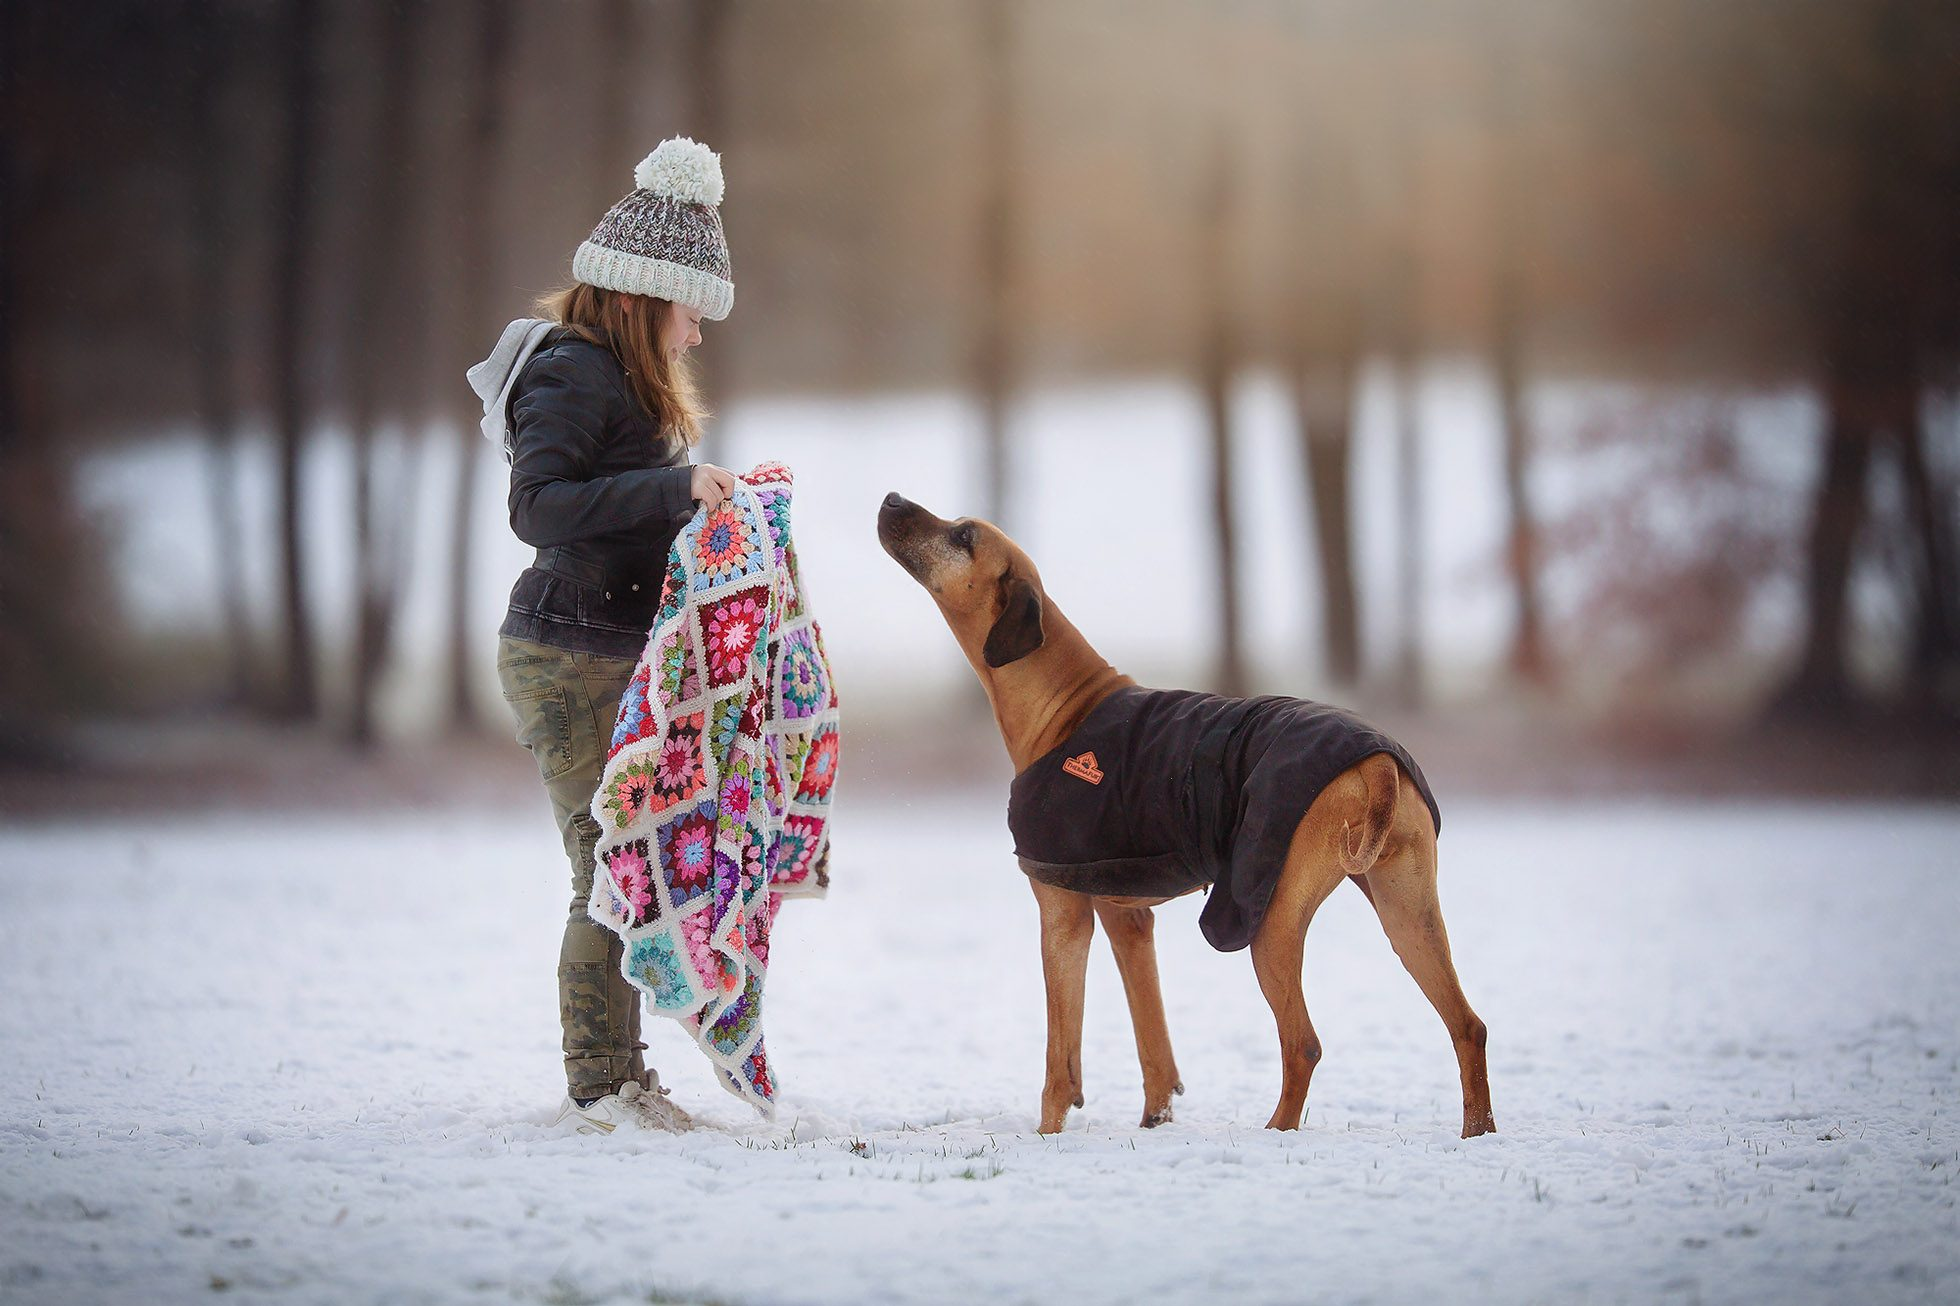 Color Canon portrait of a girl with a hat and a brown dog in playing in the snow by Willie Kers